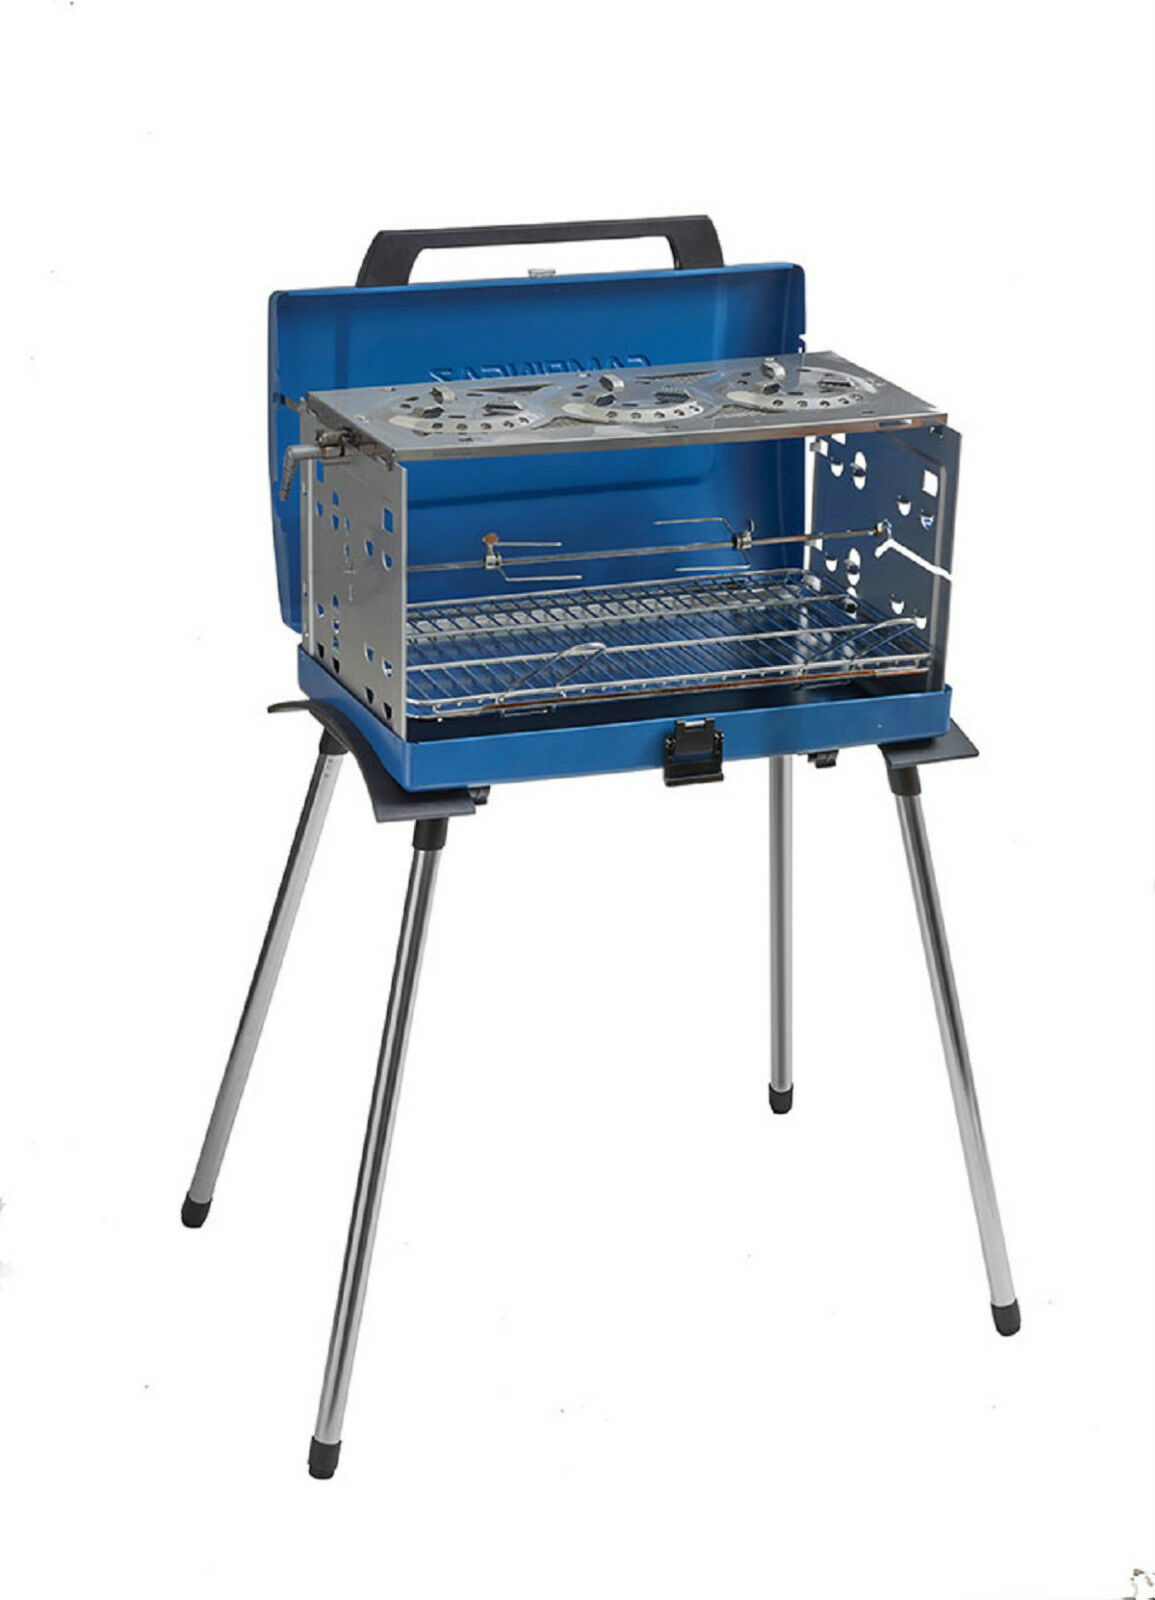 GASGRILL 200 NEUES SGR 3-flammig CAMPING GAZ KOFFERGRILL NEUES 200 MODELL 2e6d64